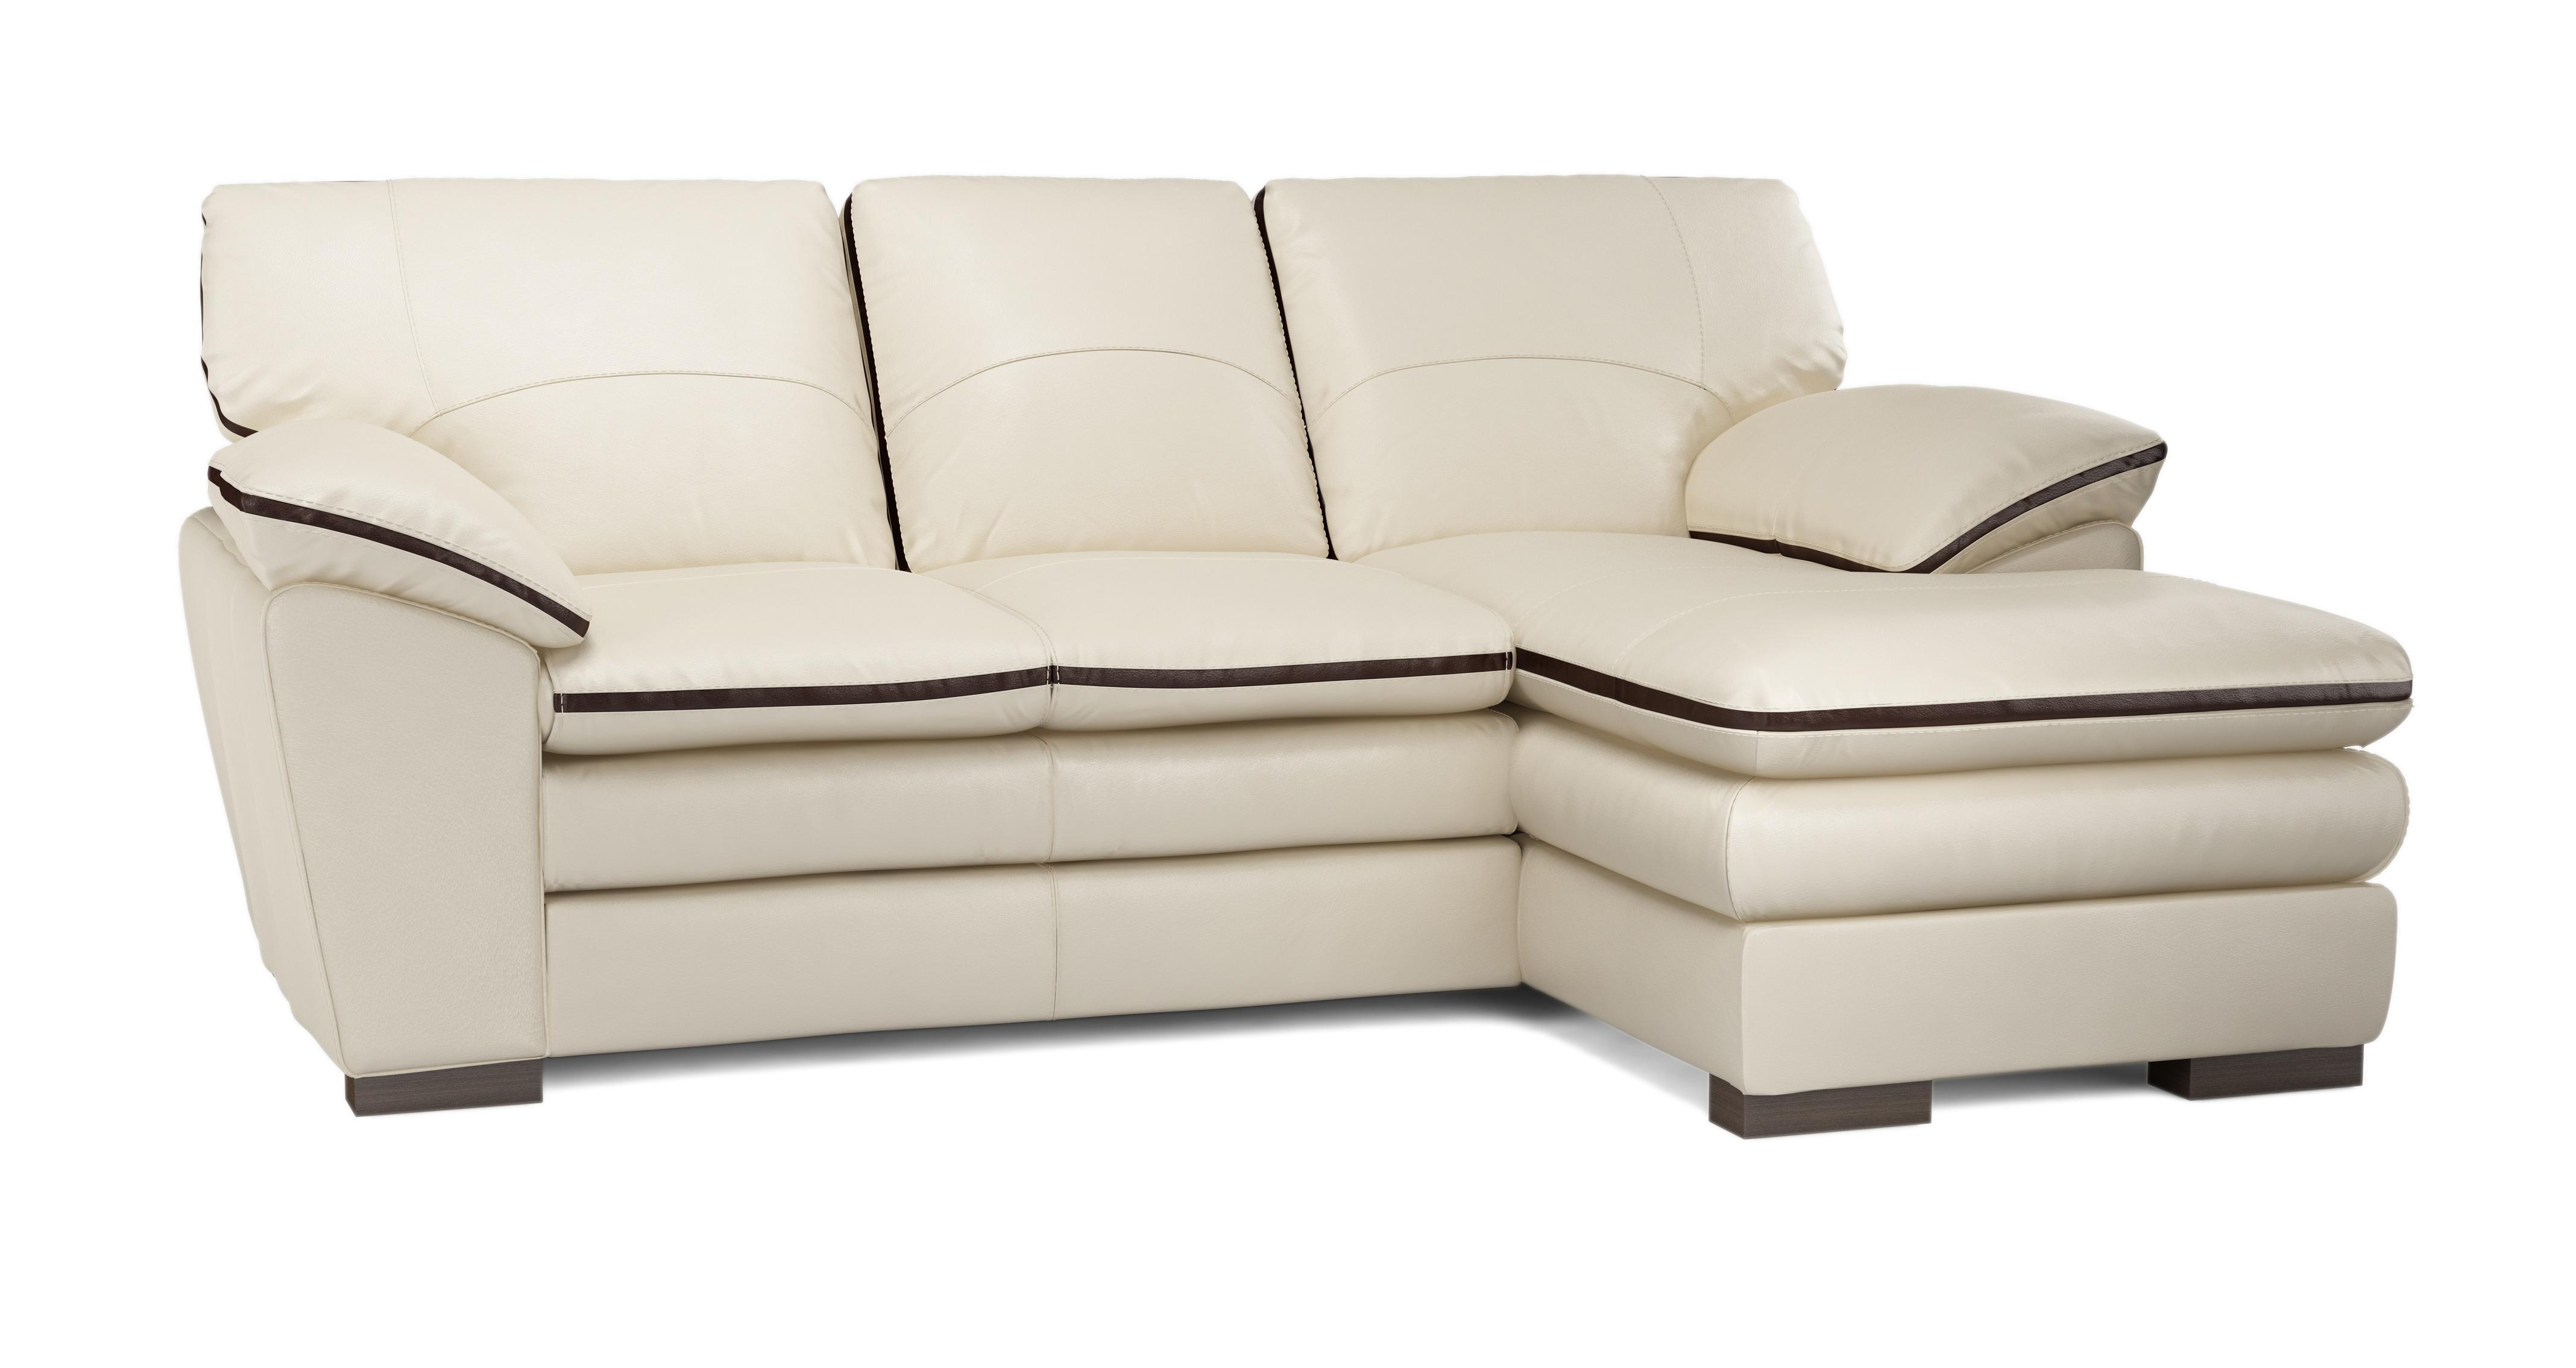 Brown Leather Chaise End Sofa Of Dfs Deco Pebble Brown Leather Set Inc Chaise End Sofa